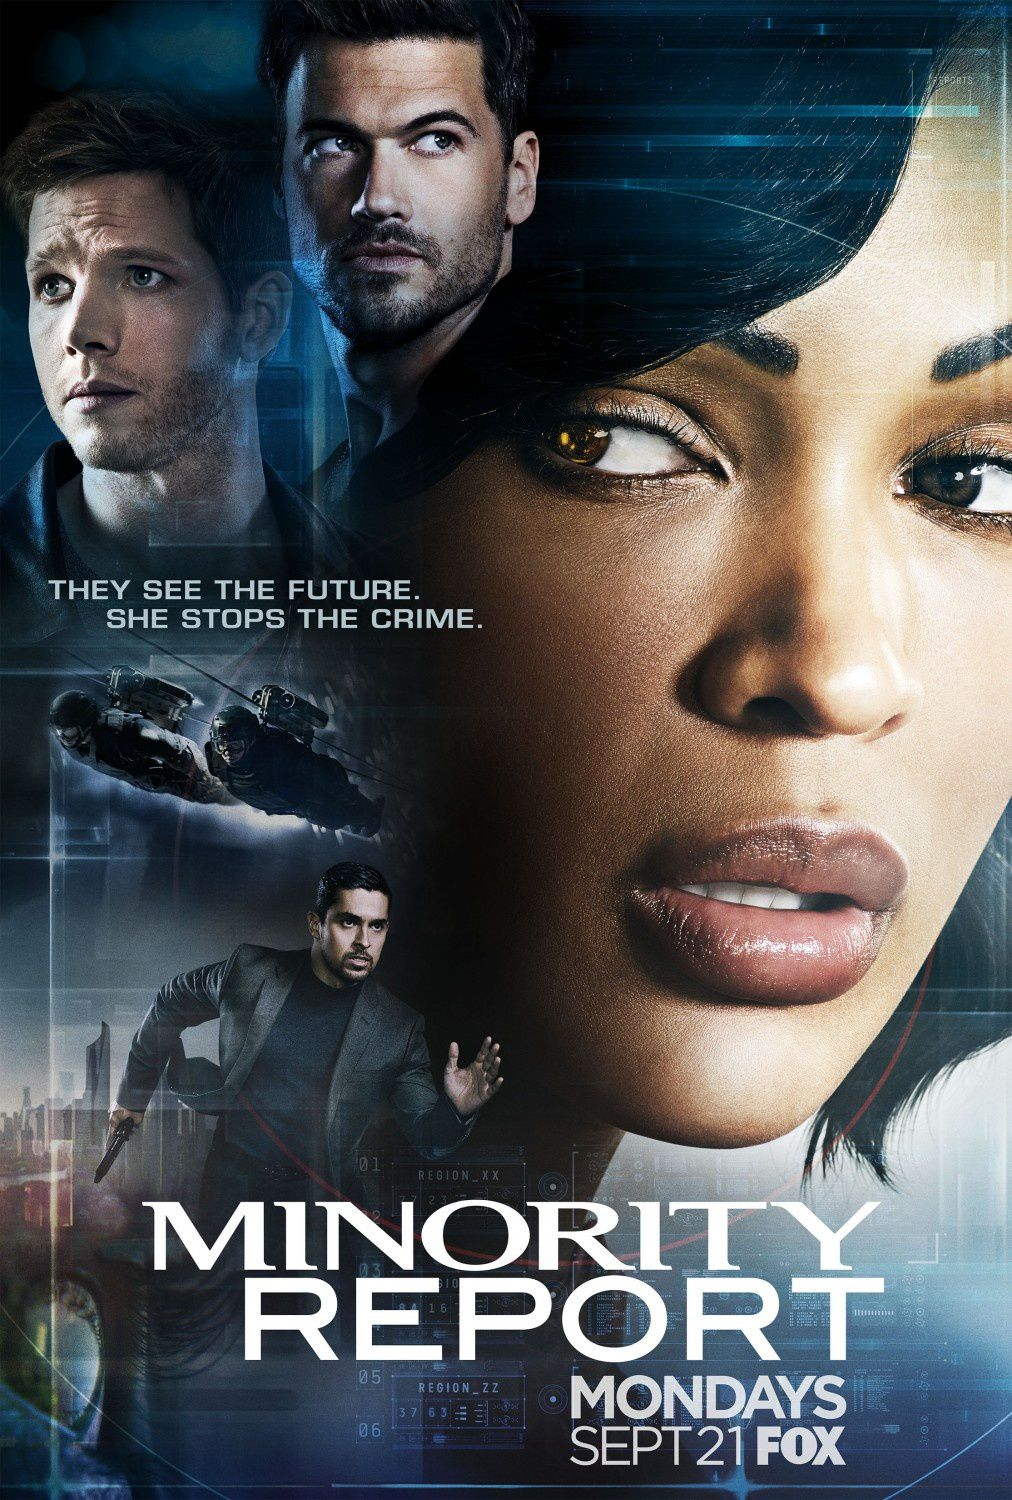 MINORITY REPORT - critique pilote